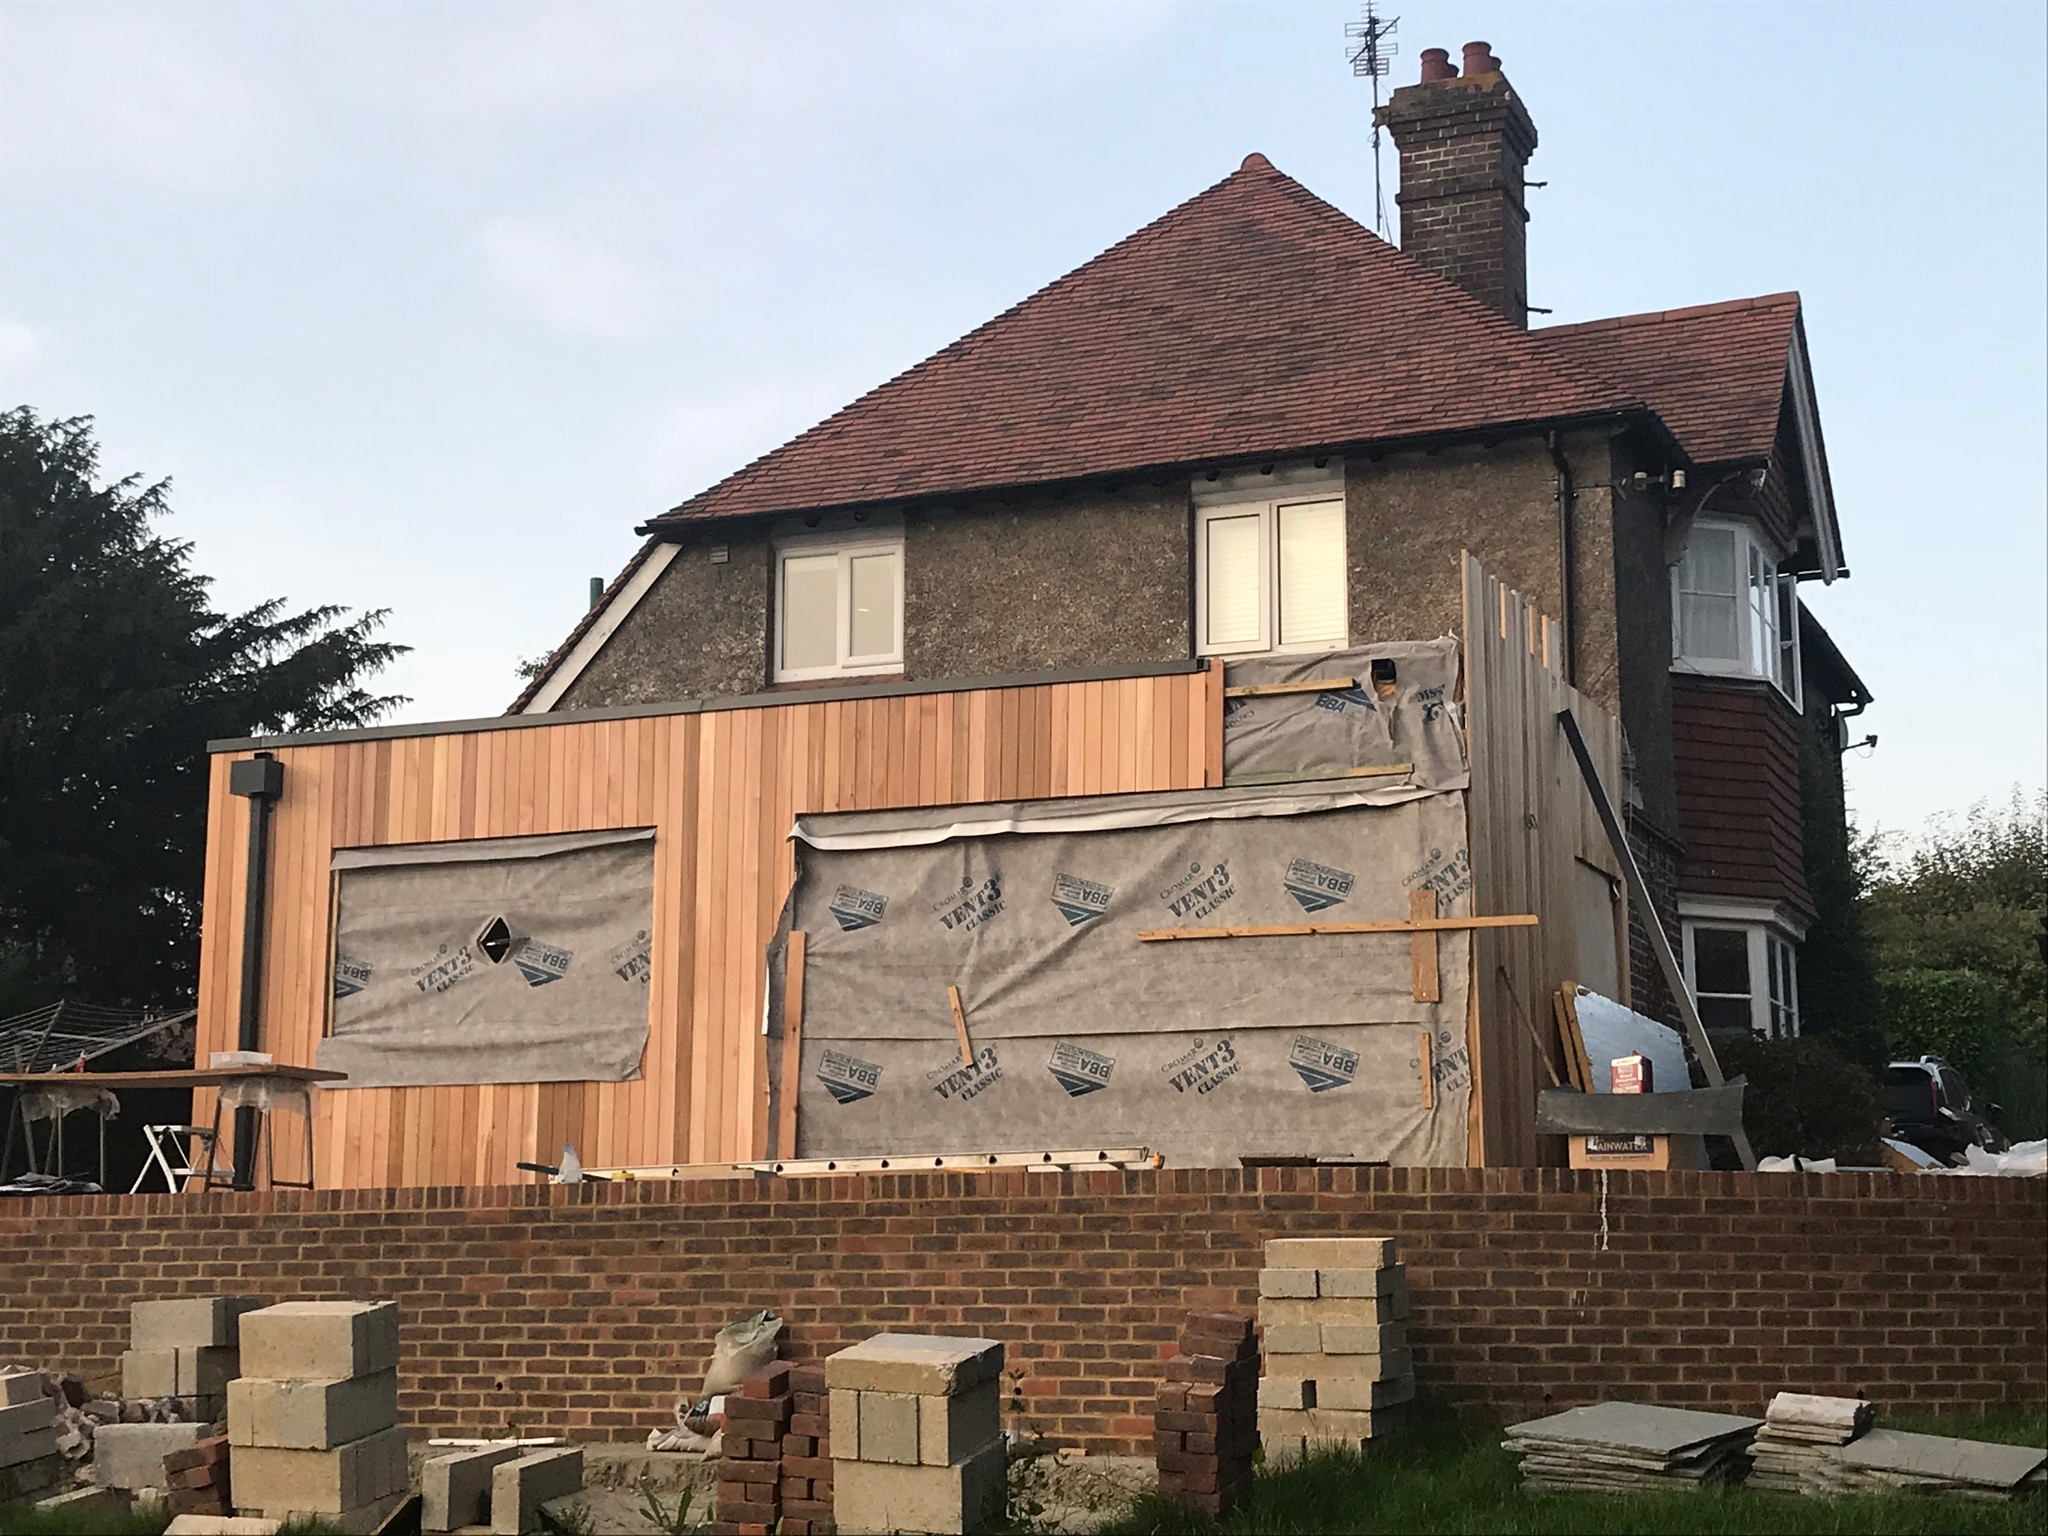 Cedar cladding goes on - can't wait for it to turn grey-ish over time (and to start work on the rest of the exterior!).